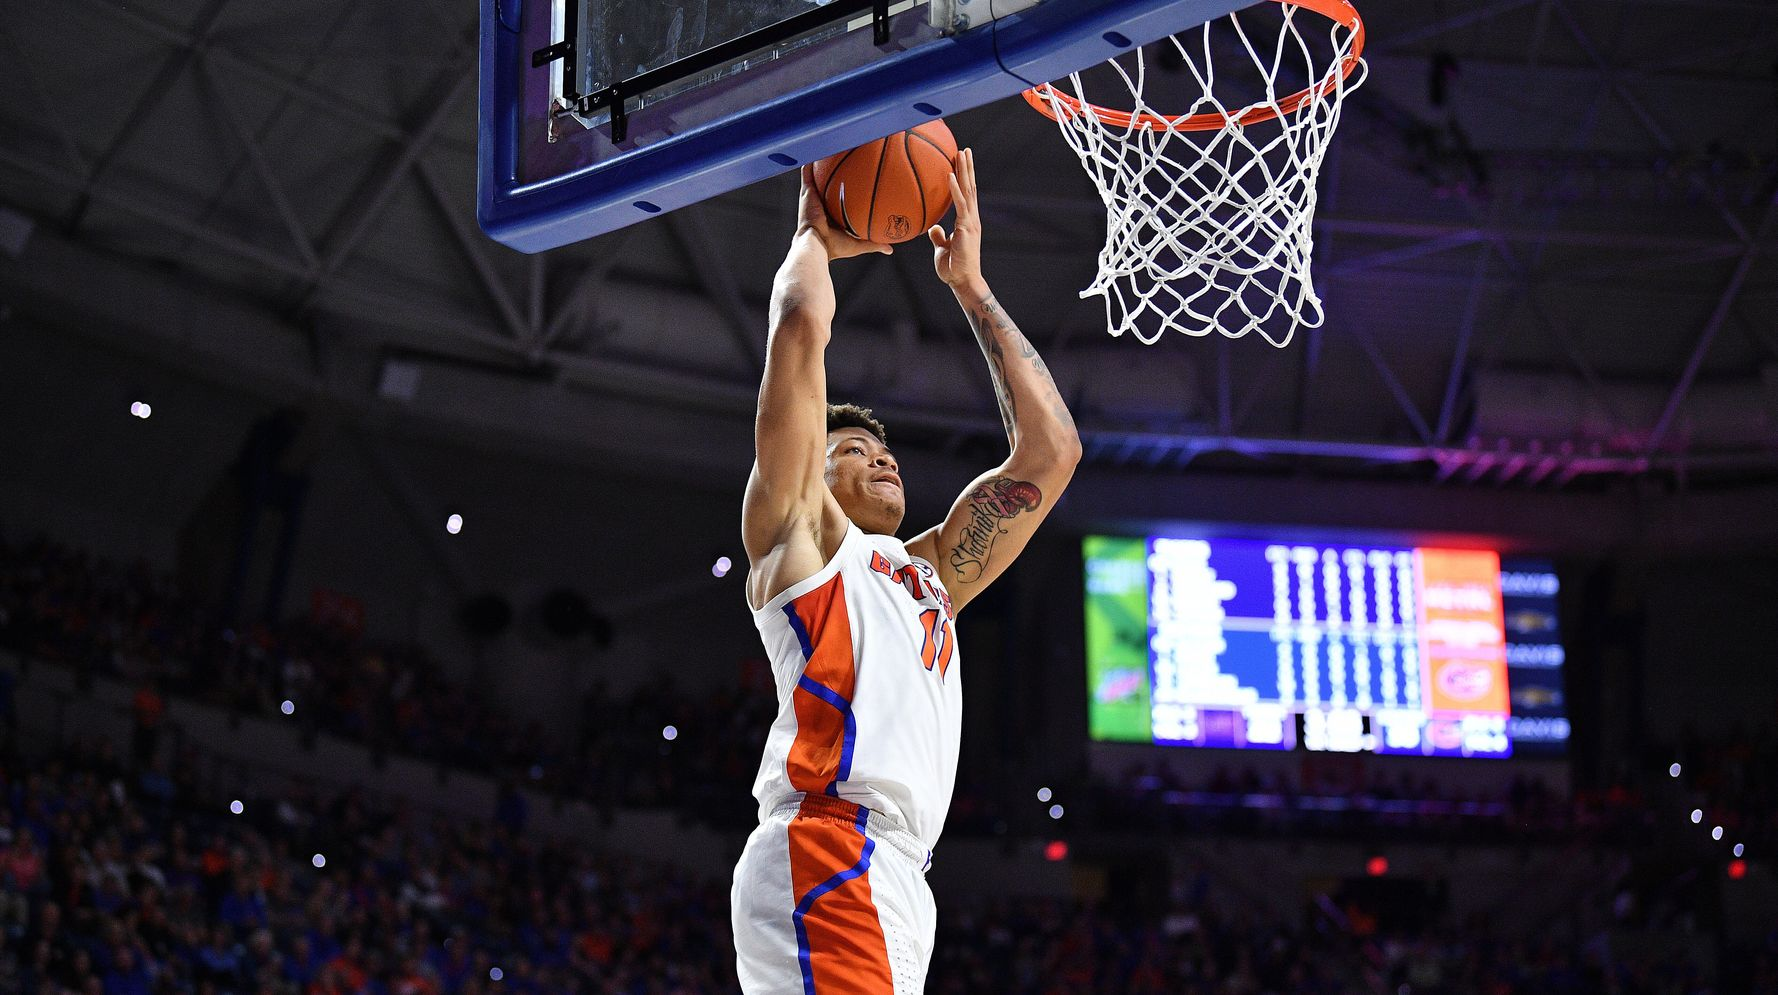 University Of Florida Basketball Player In 'Critical But Stable' Condition After Collapse